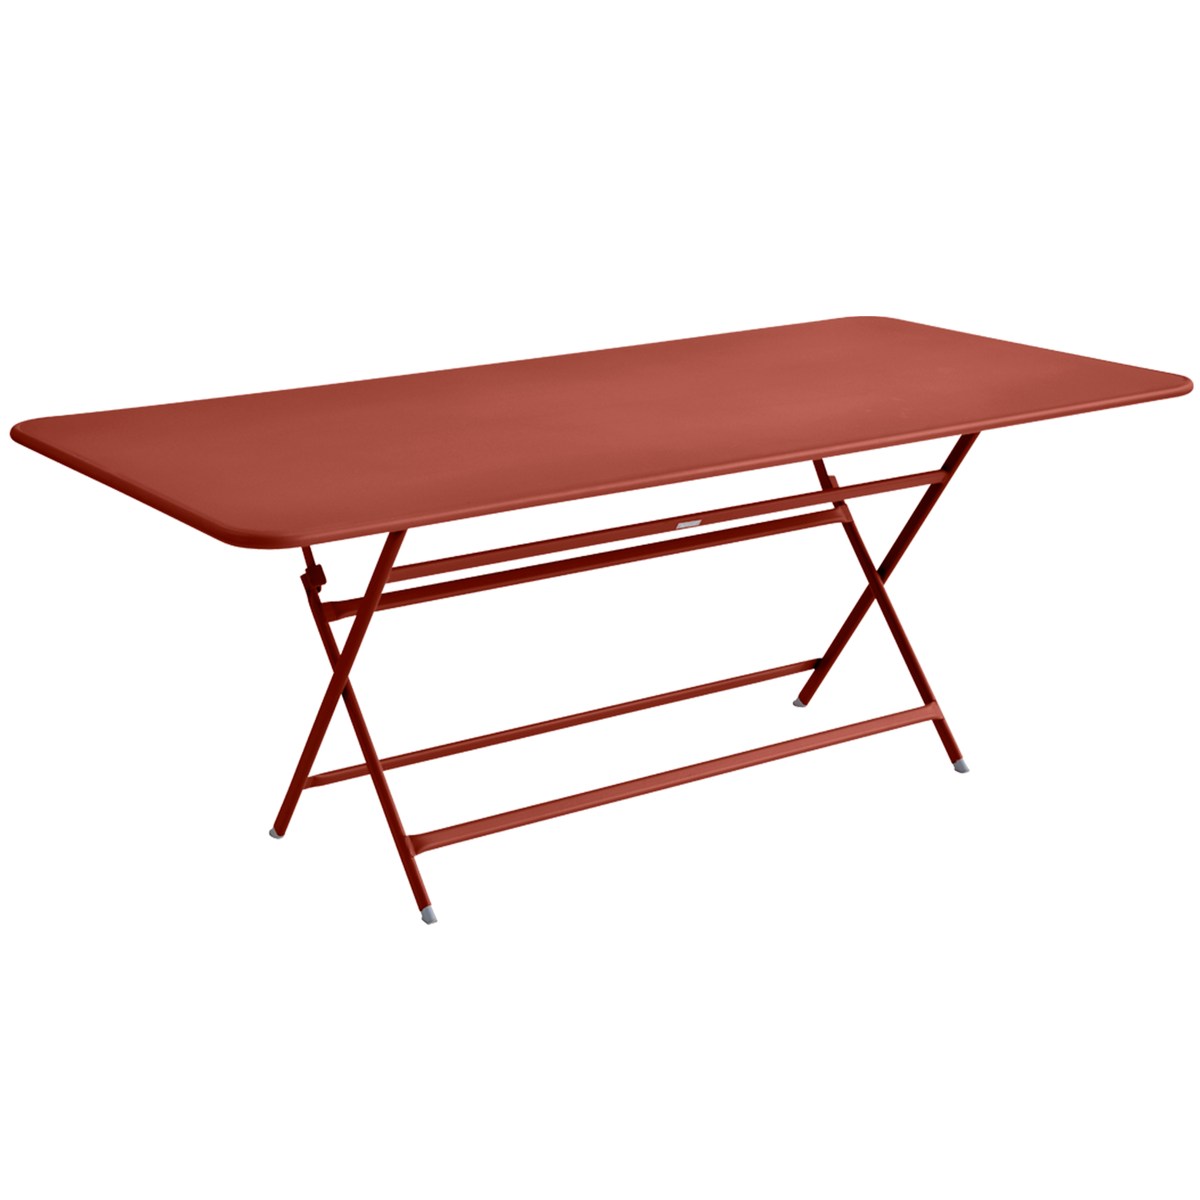 Fermob Caractere table 90 x 190 cm, red ochre from Fermob